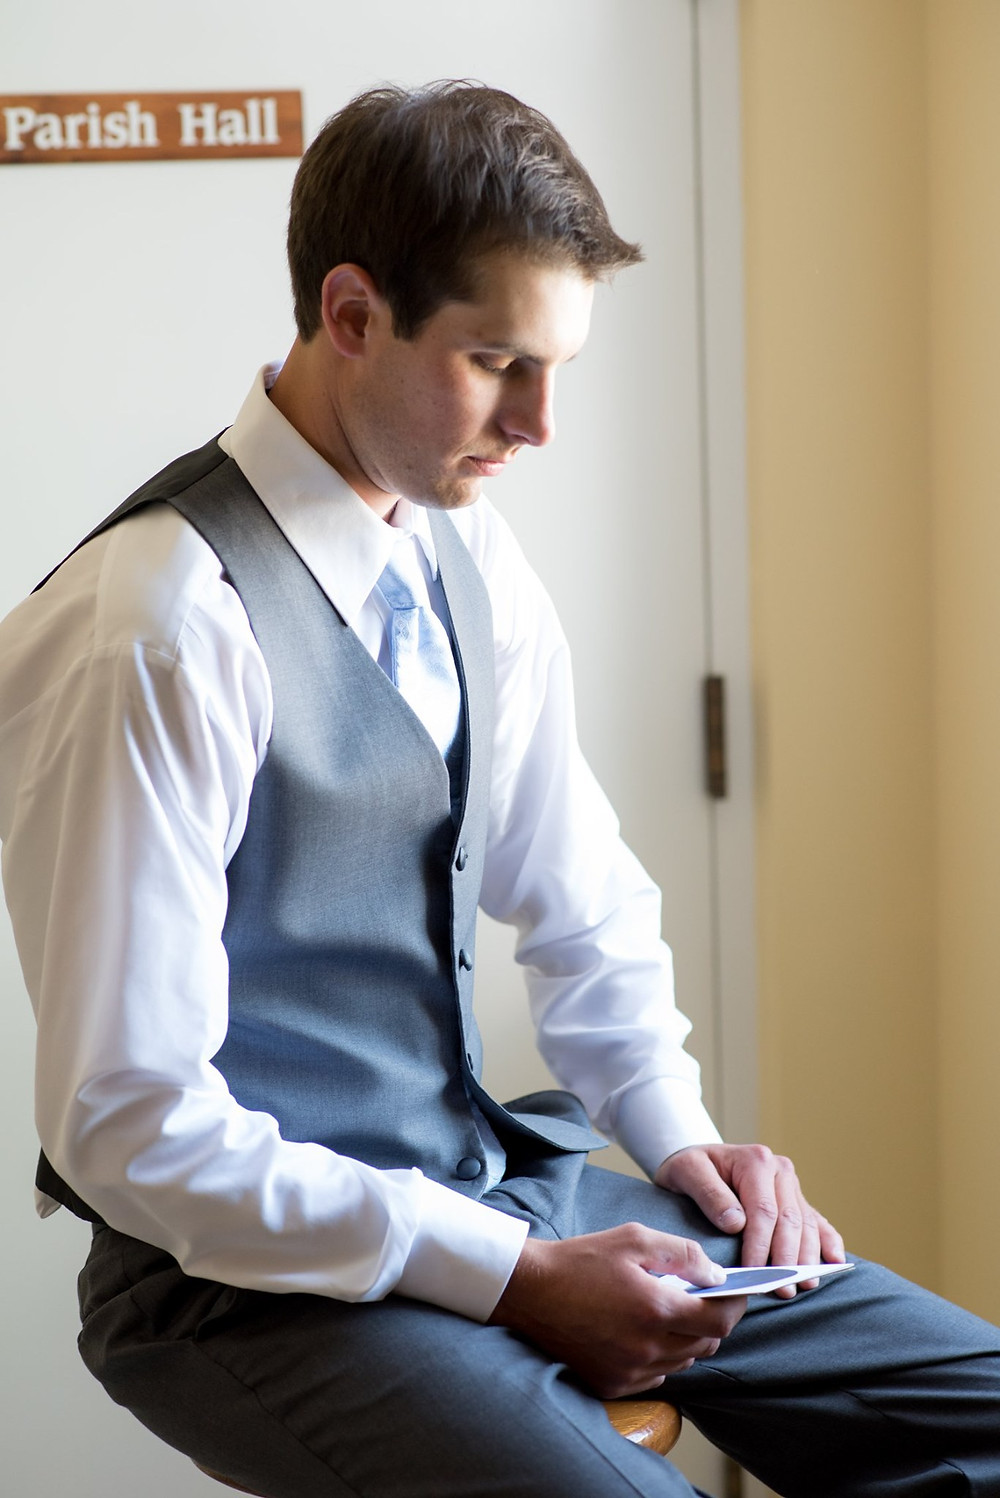 Groom is sitting on a stool looking at a letter he is holding in his and. He is not wearing a jacket but he is wearing suit bottoms, a vest and a blue tie